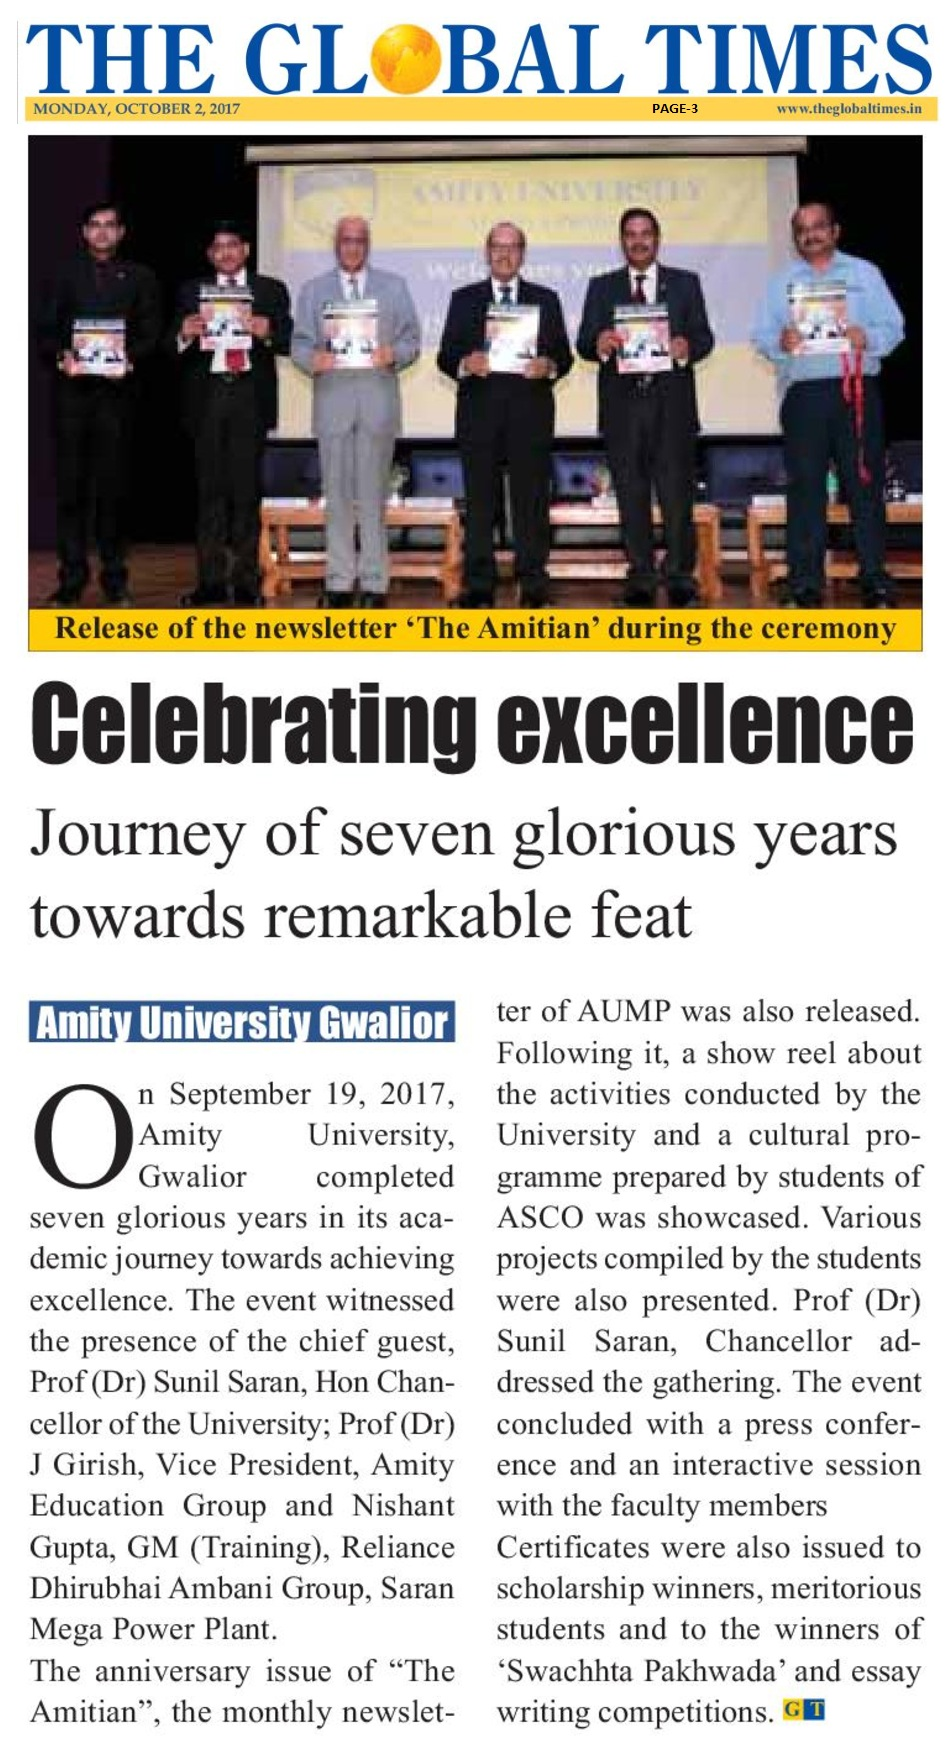 The Global Times-Celebrating Excellence -Amity